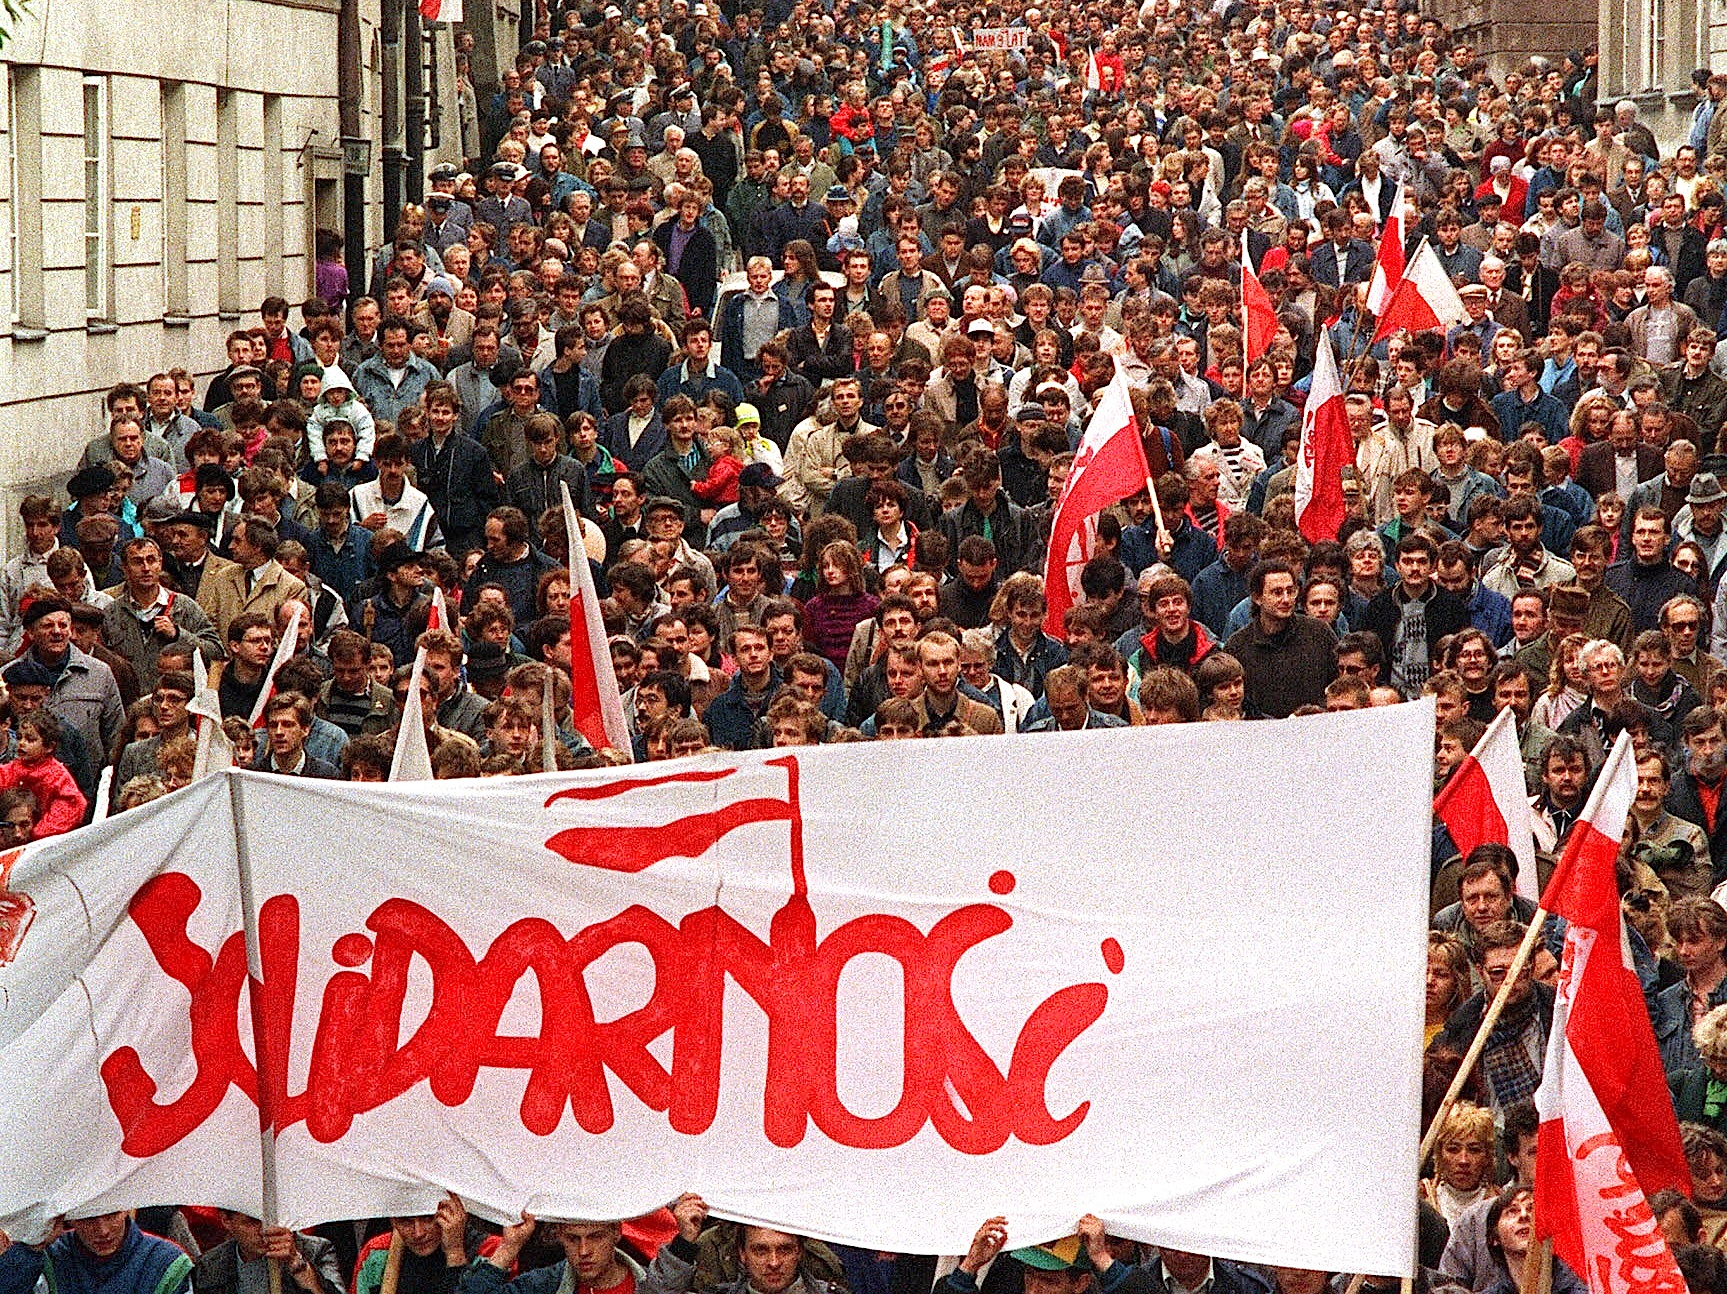 communism in poland Fall of communism in eastern europe, 1989 on november 9, 1989, thousands of jubilant germans brought down the most visible symbol of division at the heart of europe—the berlin wall.